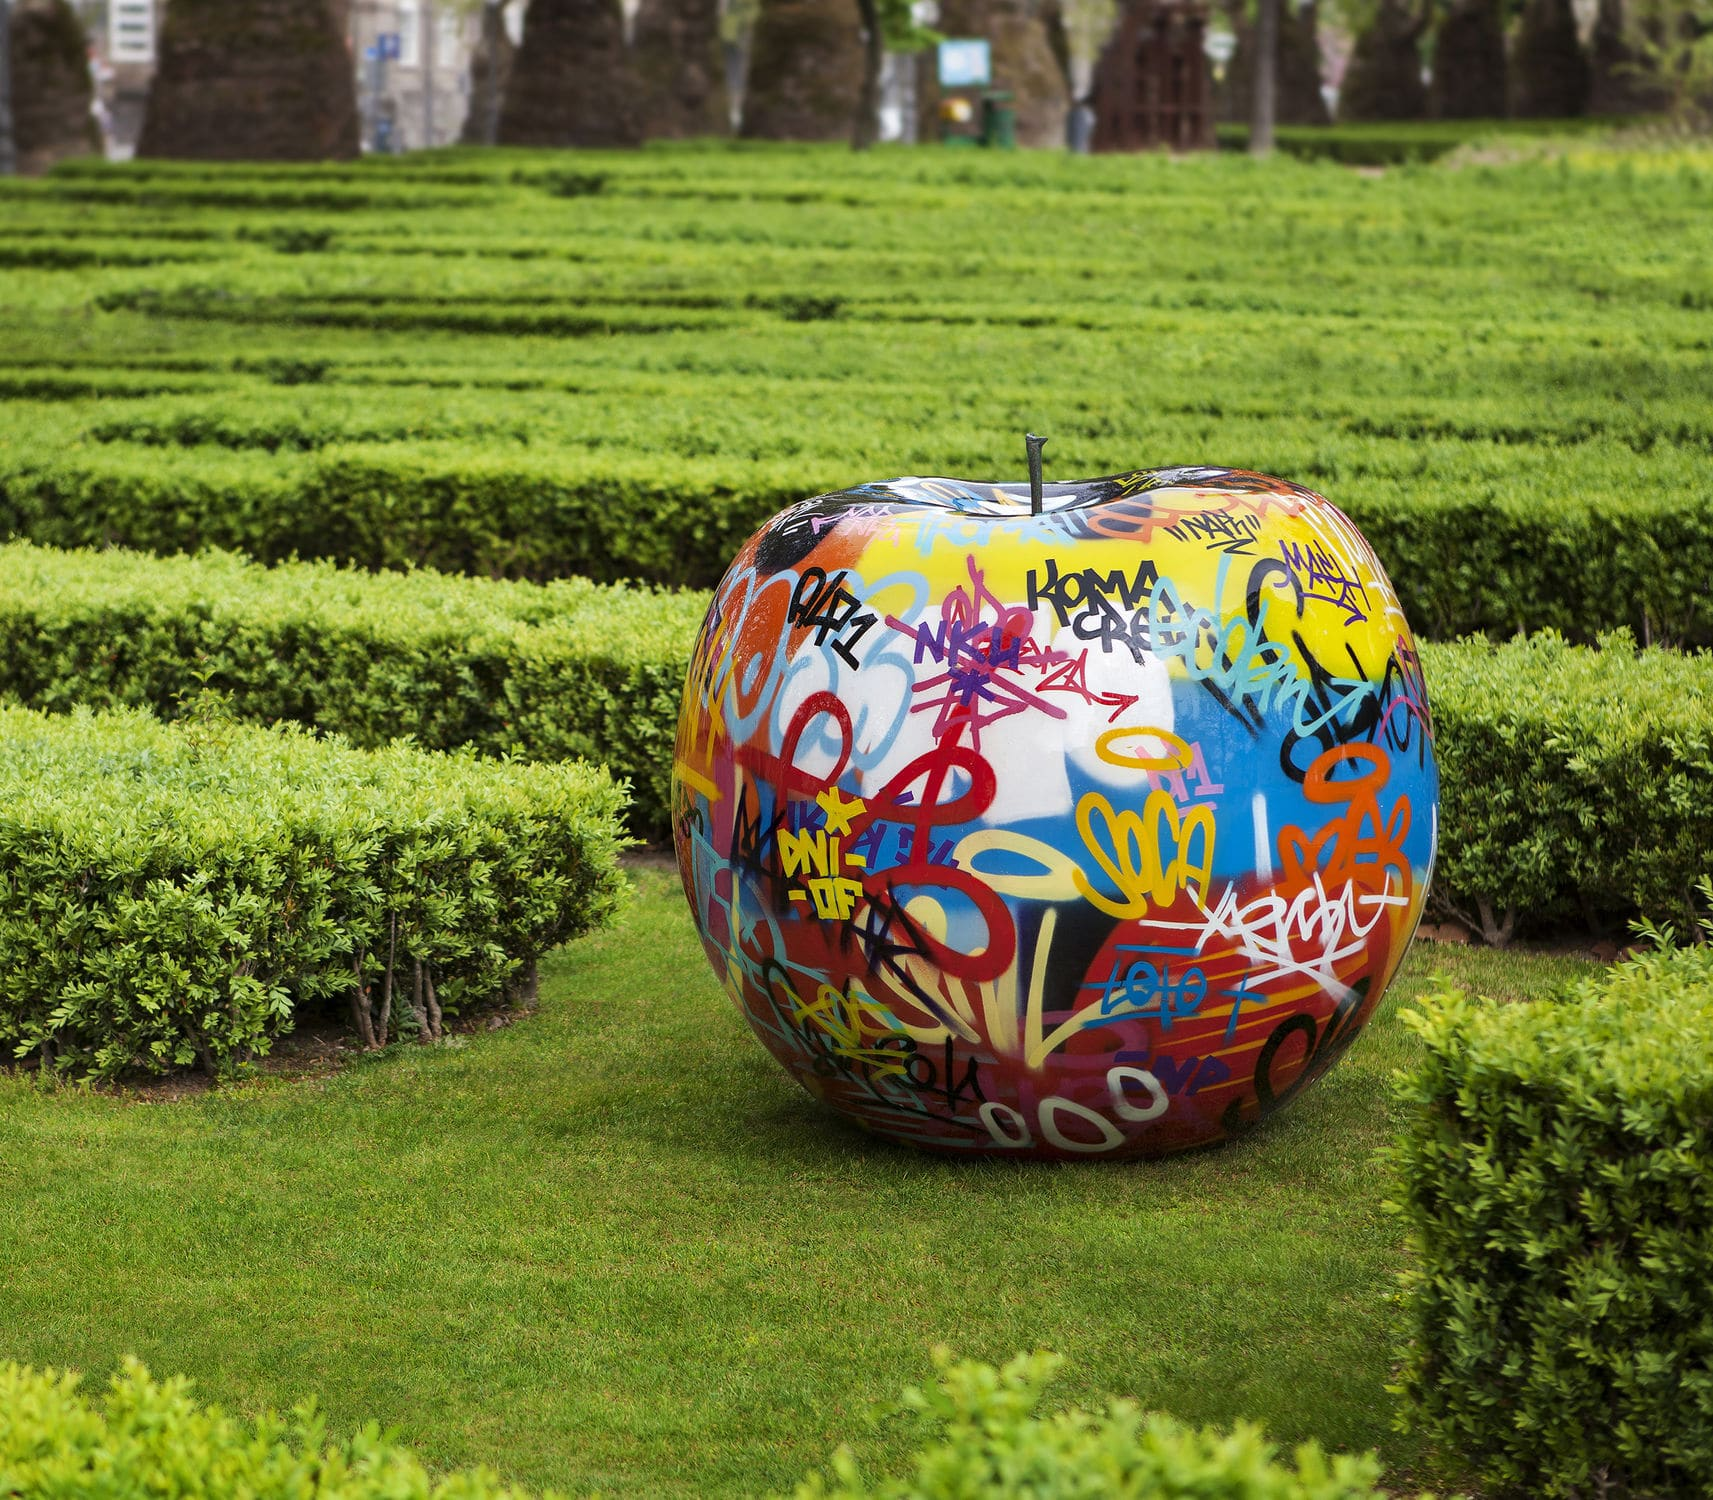 Outdoor Sculpture Ceramic Resin Commercial Graffiti By Bruno